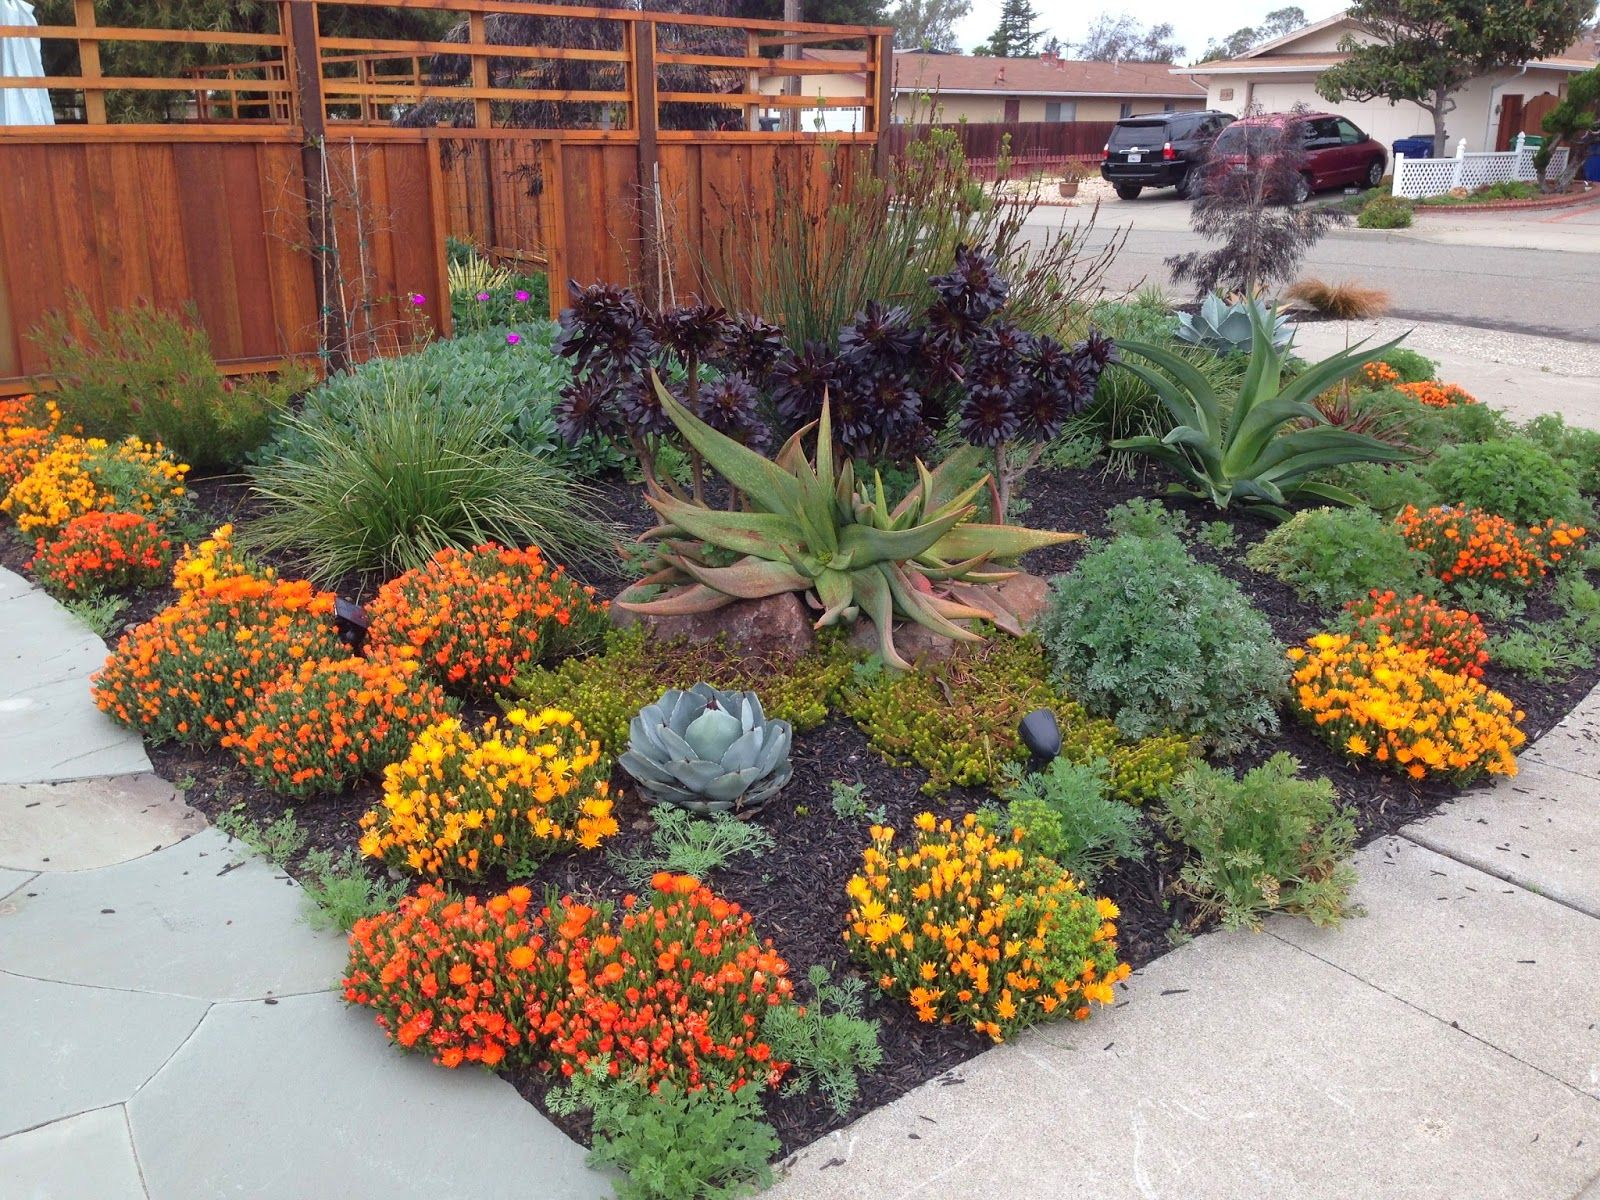 Drought Tolerant Garden Design sunnylands drought tolerant plants low water plants about plants landscaping Farallon Gardens Alameda Drought Tolerant Garden February Blooms